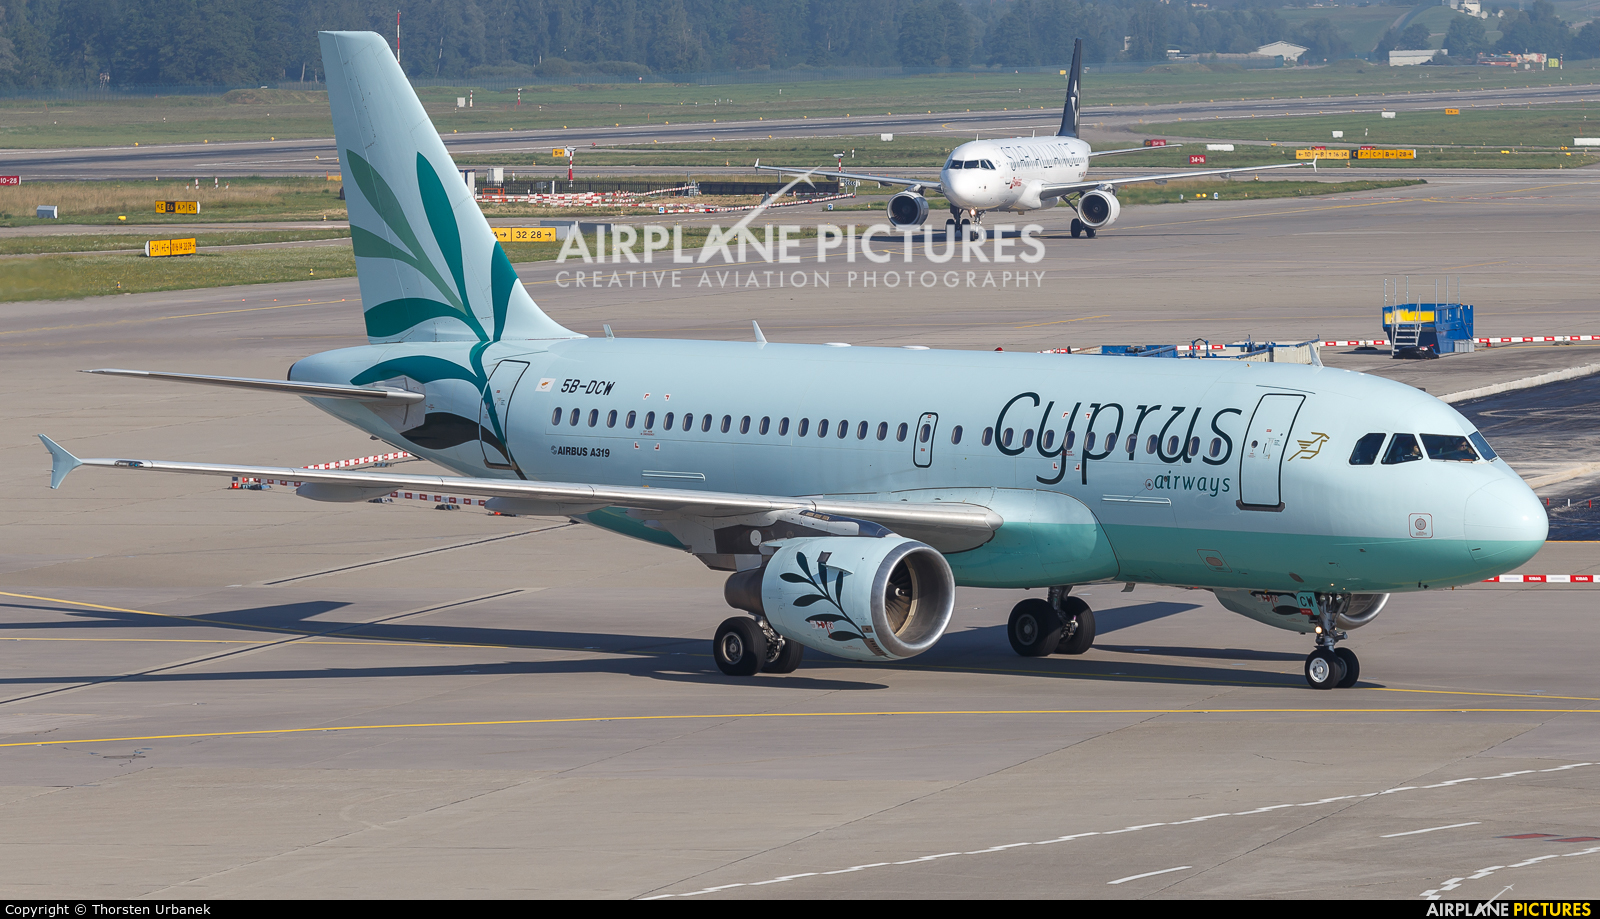 Cyprus Airways 5B-DCW aircraft at Zurich